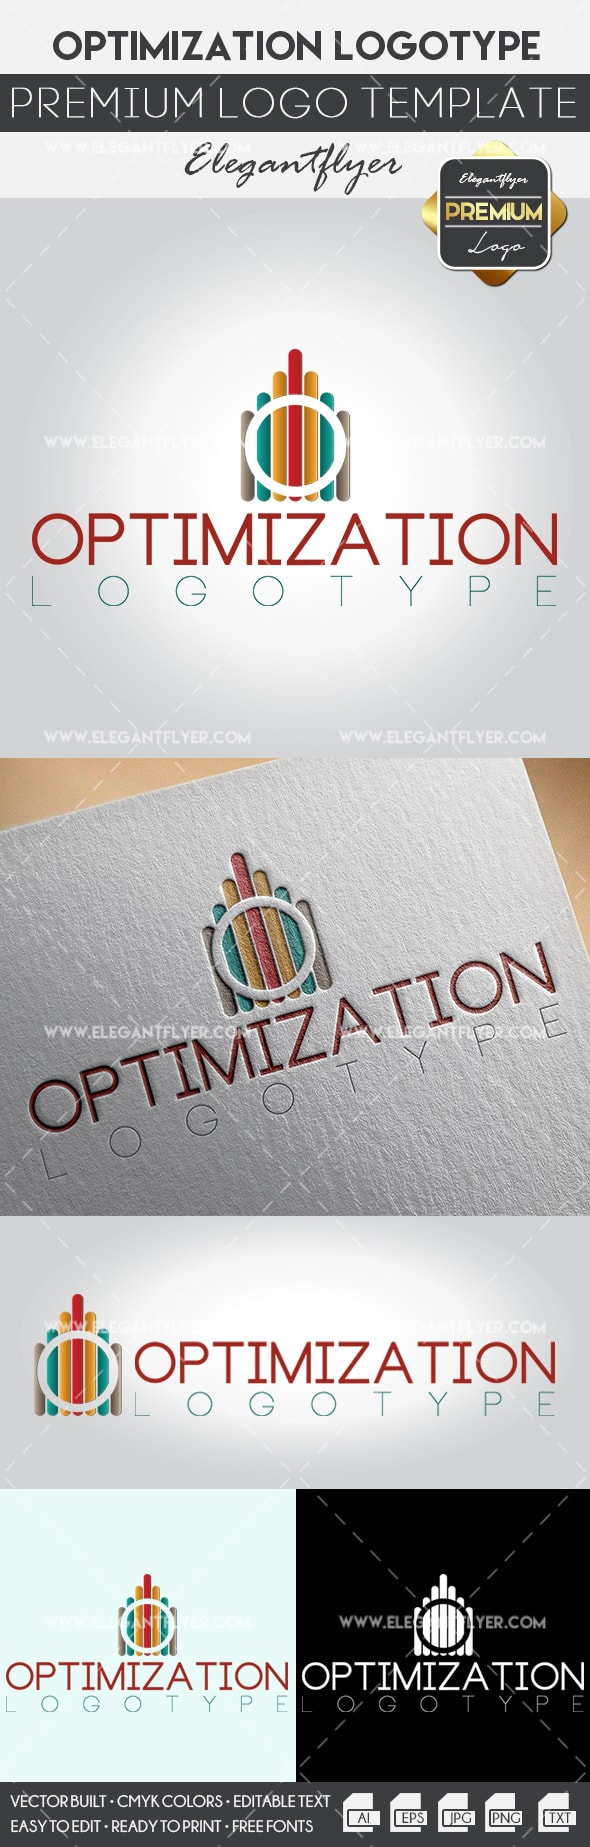 Optimization – Premium Logo Template